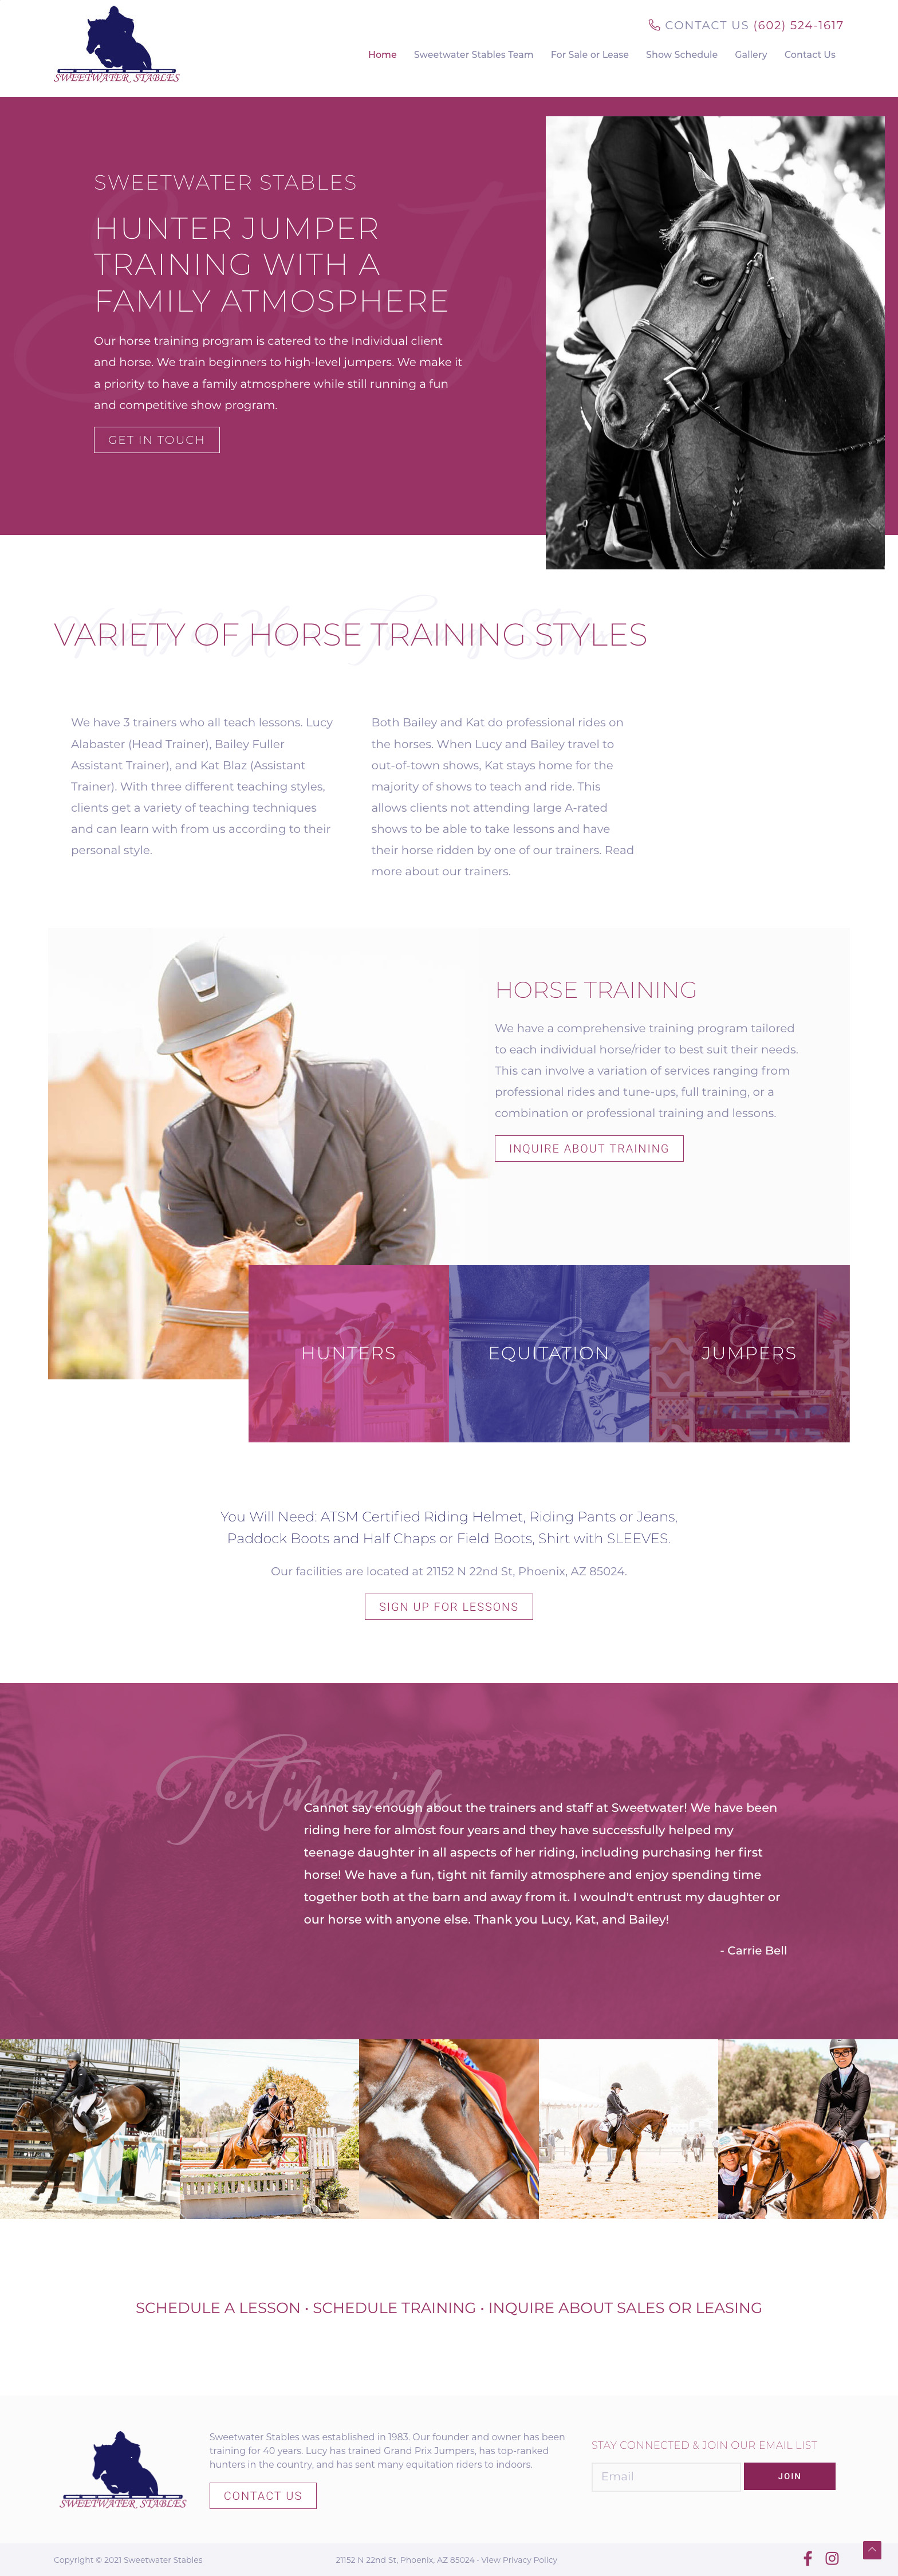 Sweetwater Stables Website Design